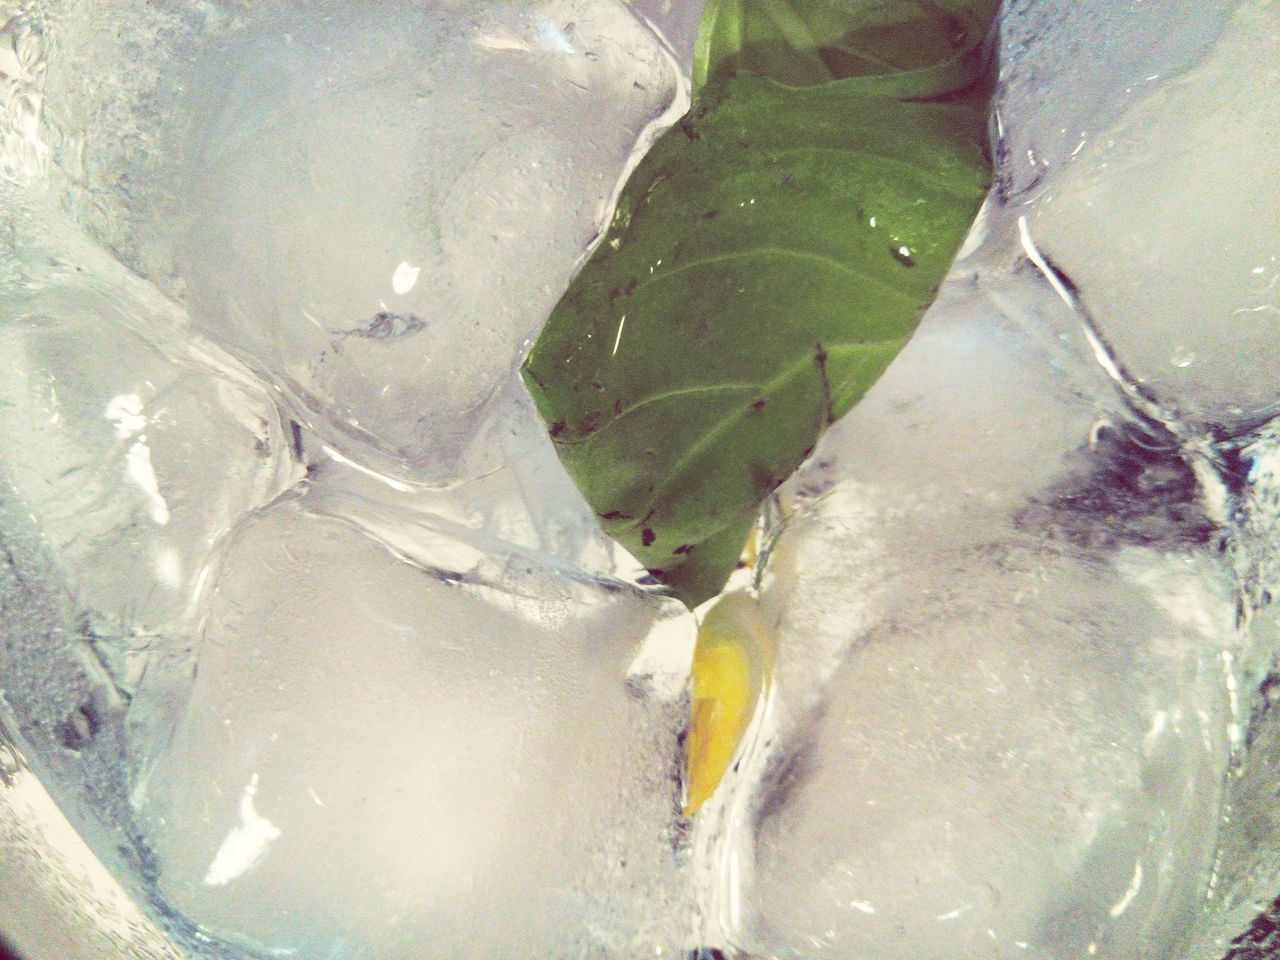 Drinking Gin Tonic Gin Tonic On Ice Tonic Water Gin & Tonic Gin And Tonic Tonica Tonicwater Ice Basilico Basil Lemon Gintonic Gin Tonic Drinkgin Drinkporn Having A Drink Drink Drinks